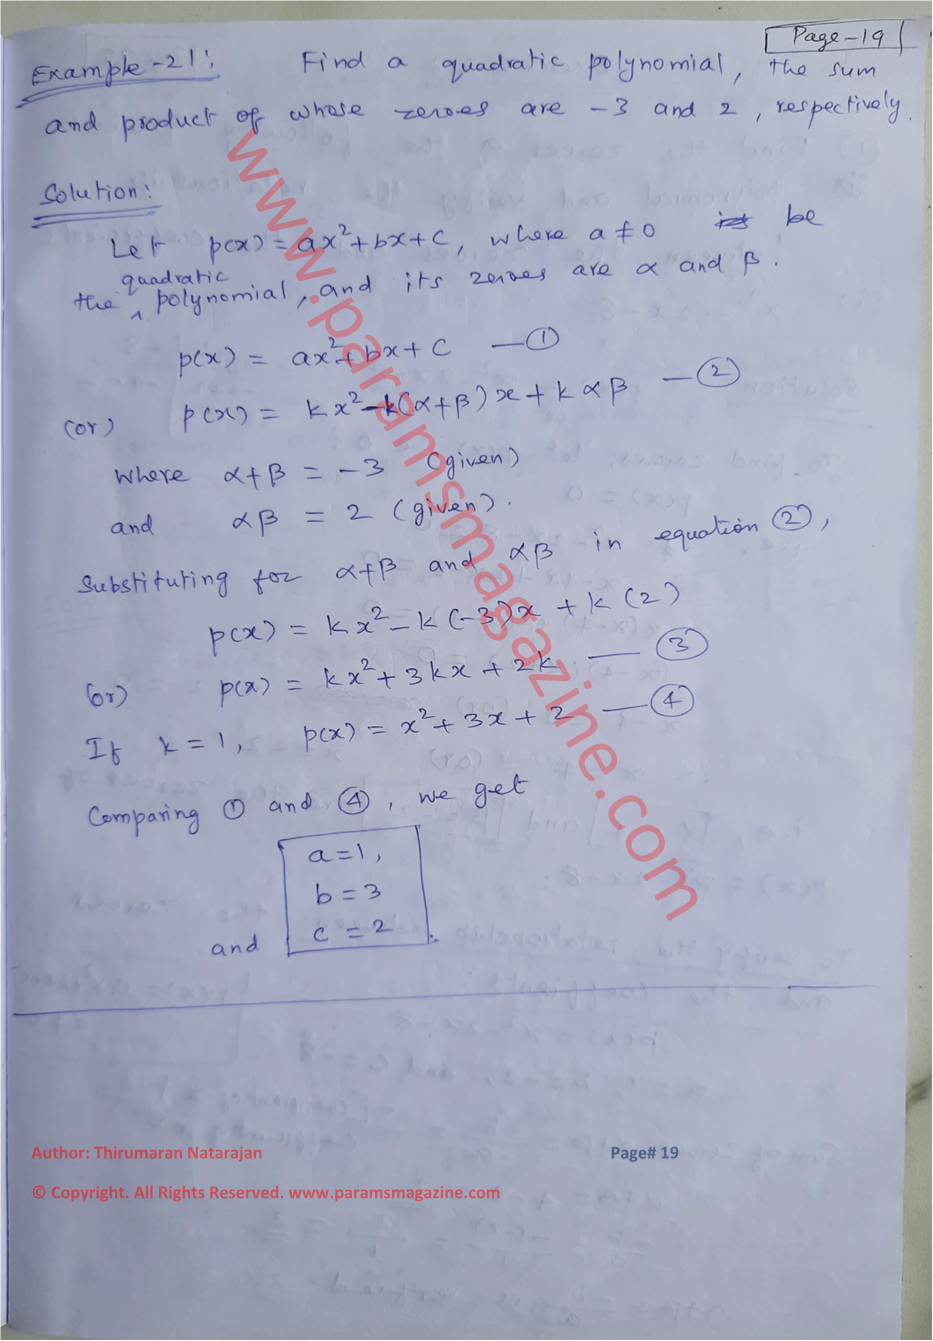 Class-10 - Polynomials - Notes - Page-19